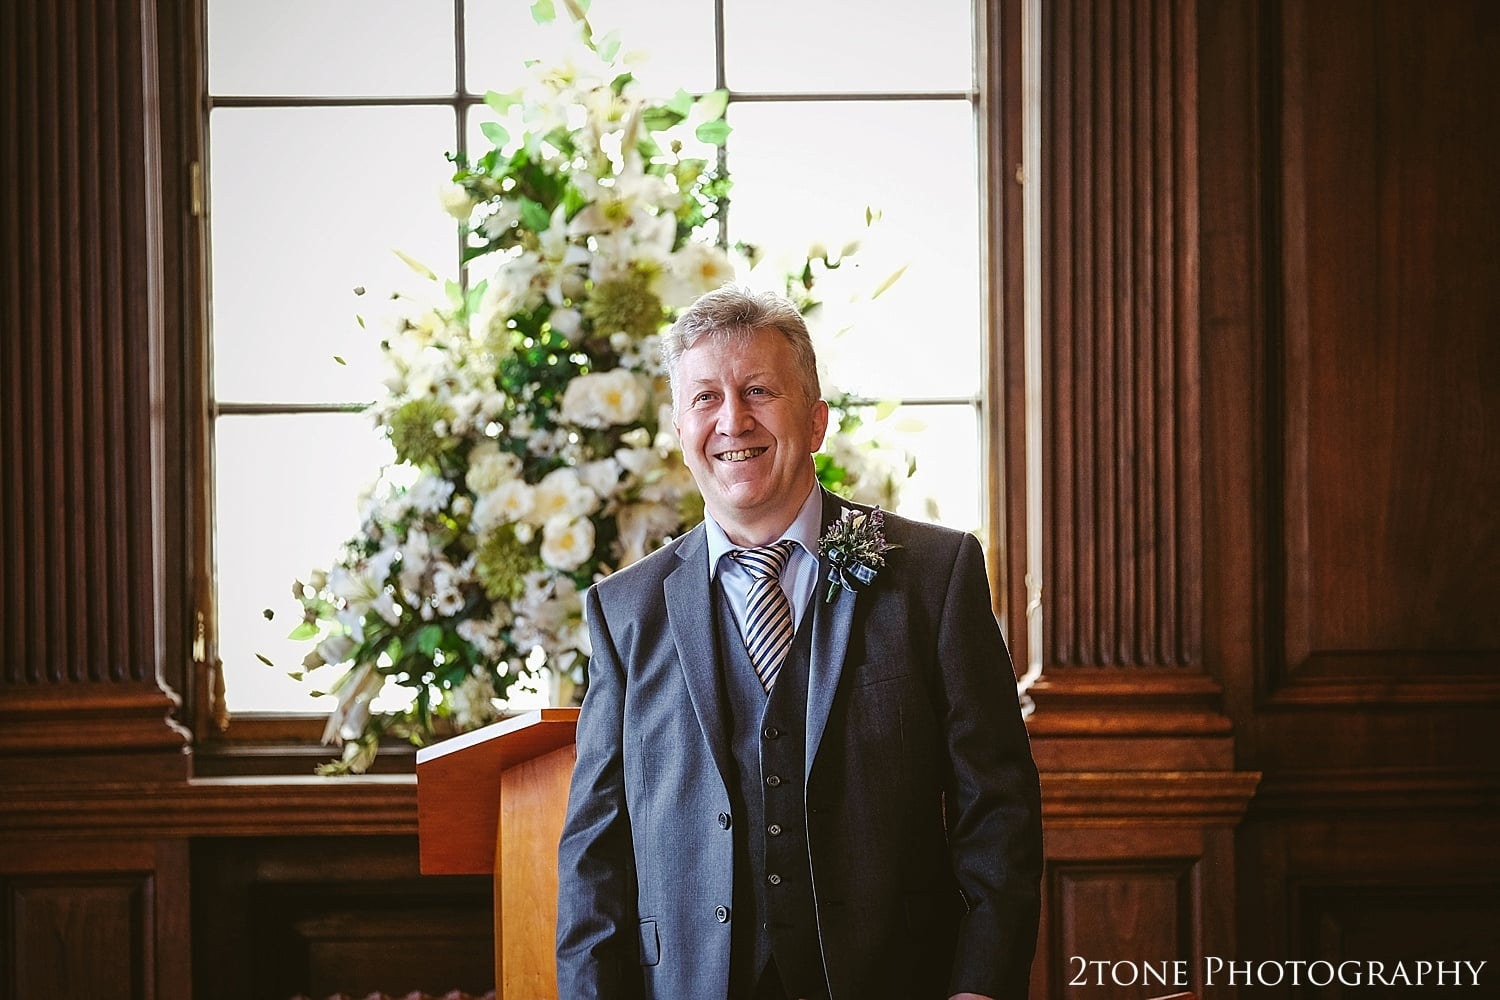 Groom waiting in the Lothian Chambers in Edinburgh by 2tone Photography